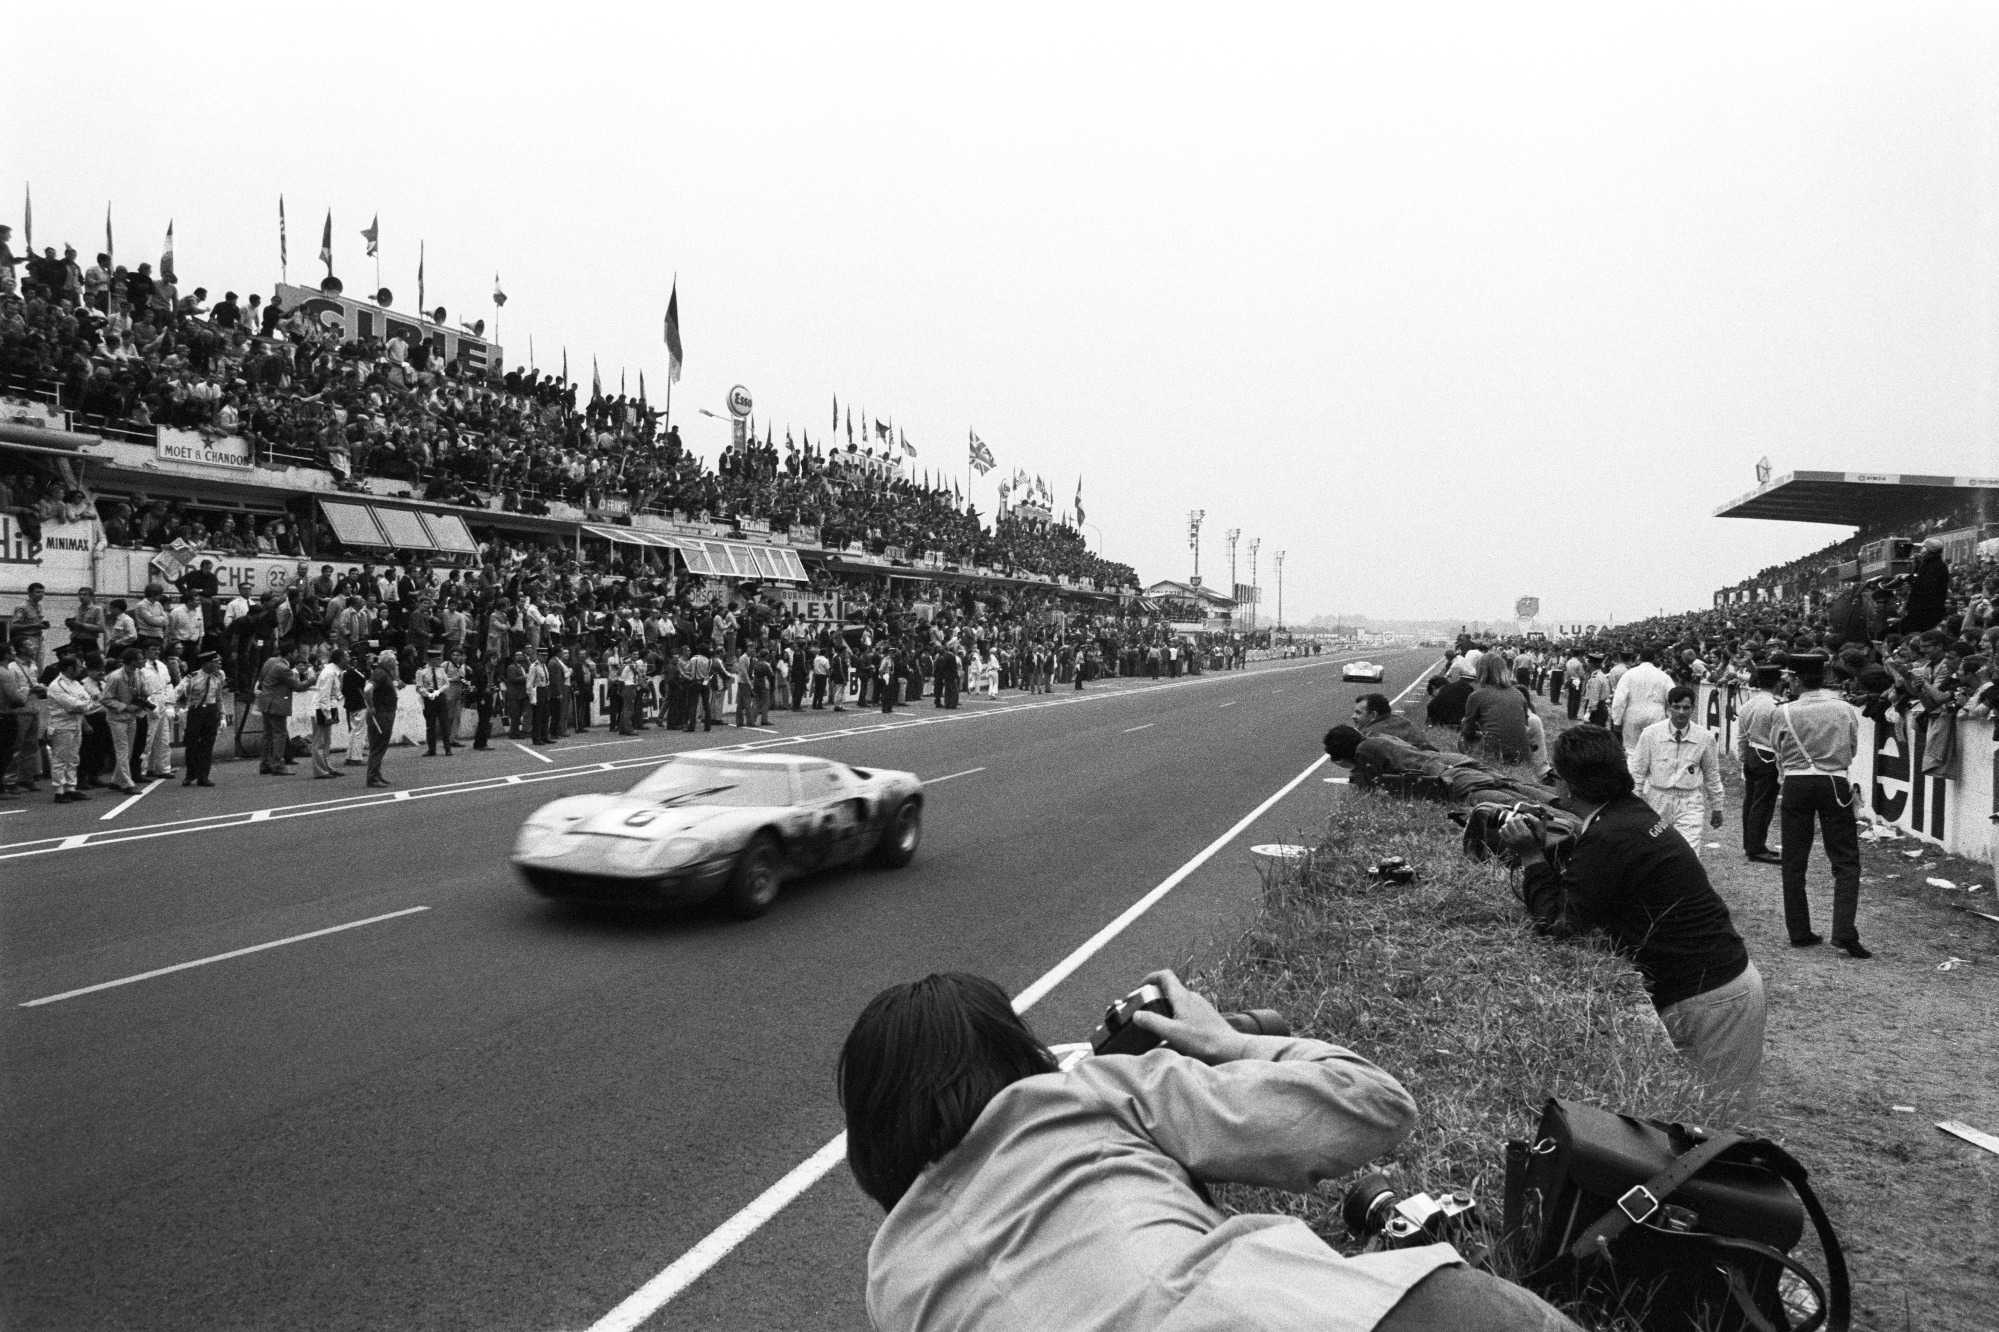 Ickx pipped Hermann in 1969 after a final lap akin to an Olympic cycling sprint